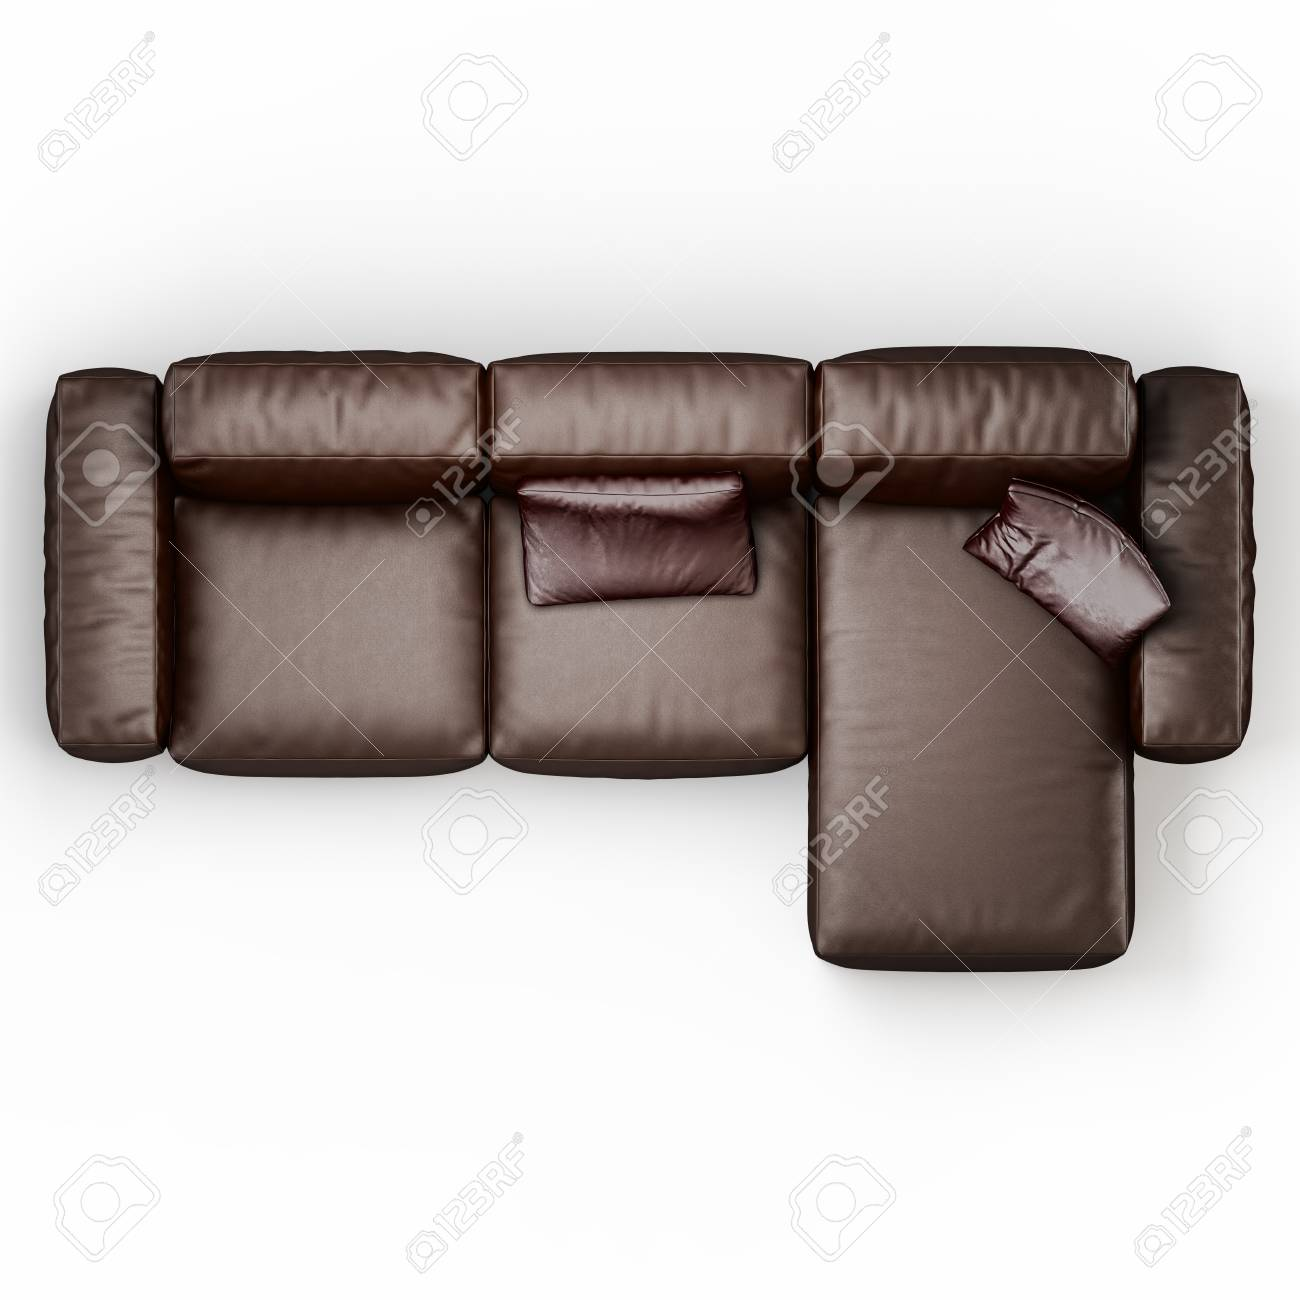 Leather corner sofa brown color on a white background top view..